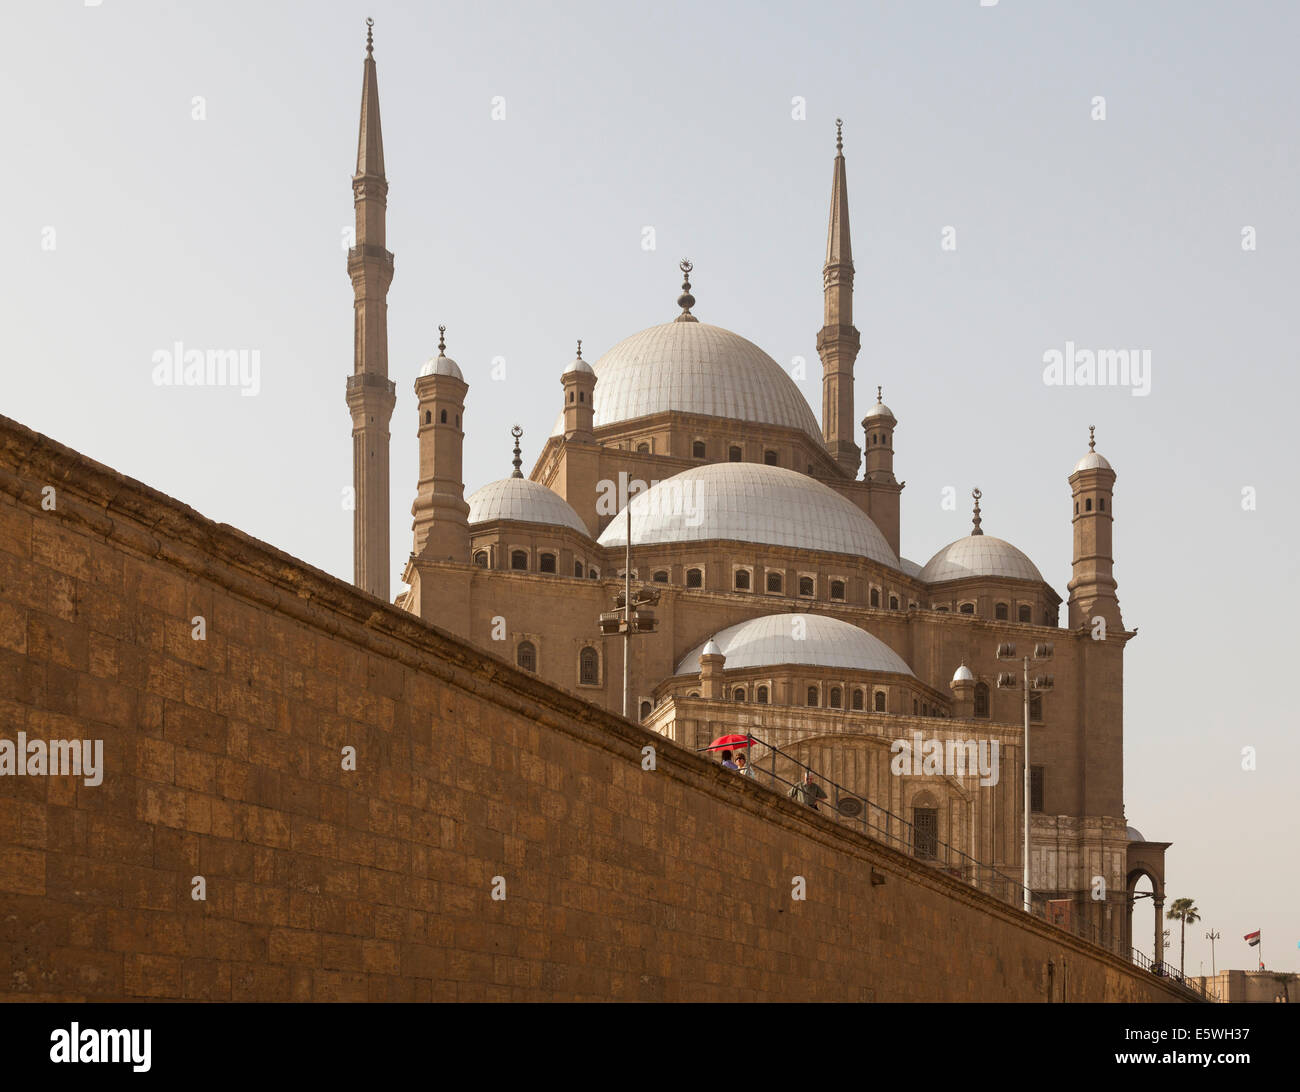 Alabaster Mosque or Mosque of Muhammad Ali Pasha in the Citadel of Cairo, Egypt - Stock Image